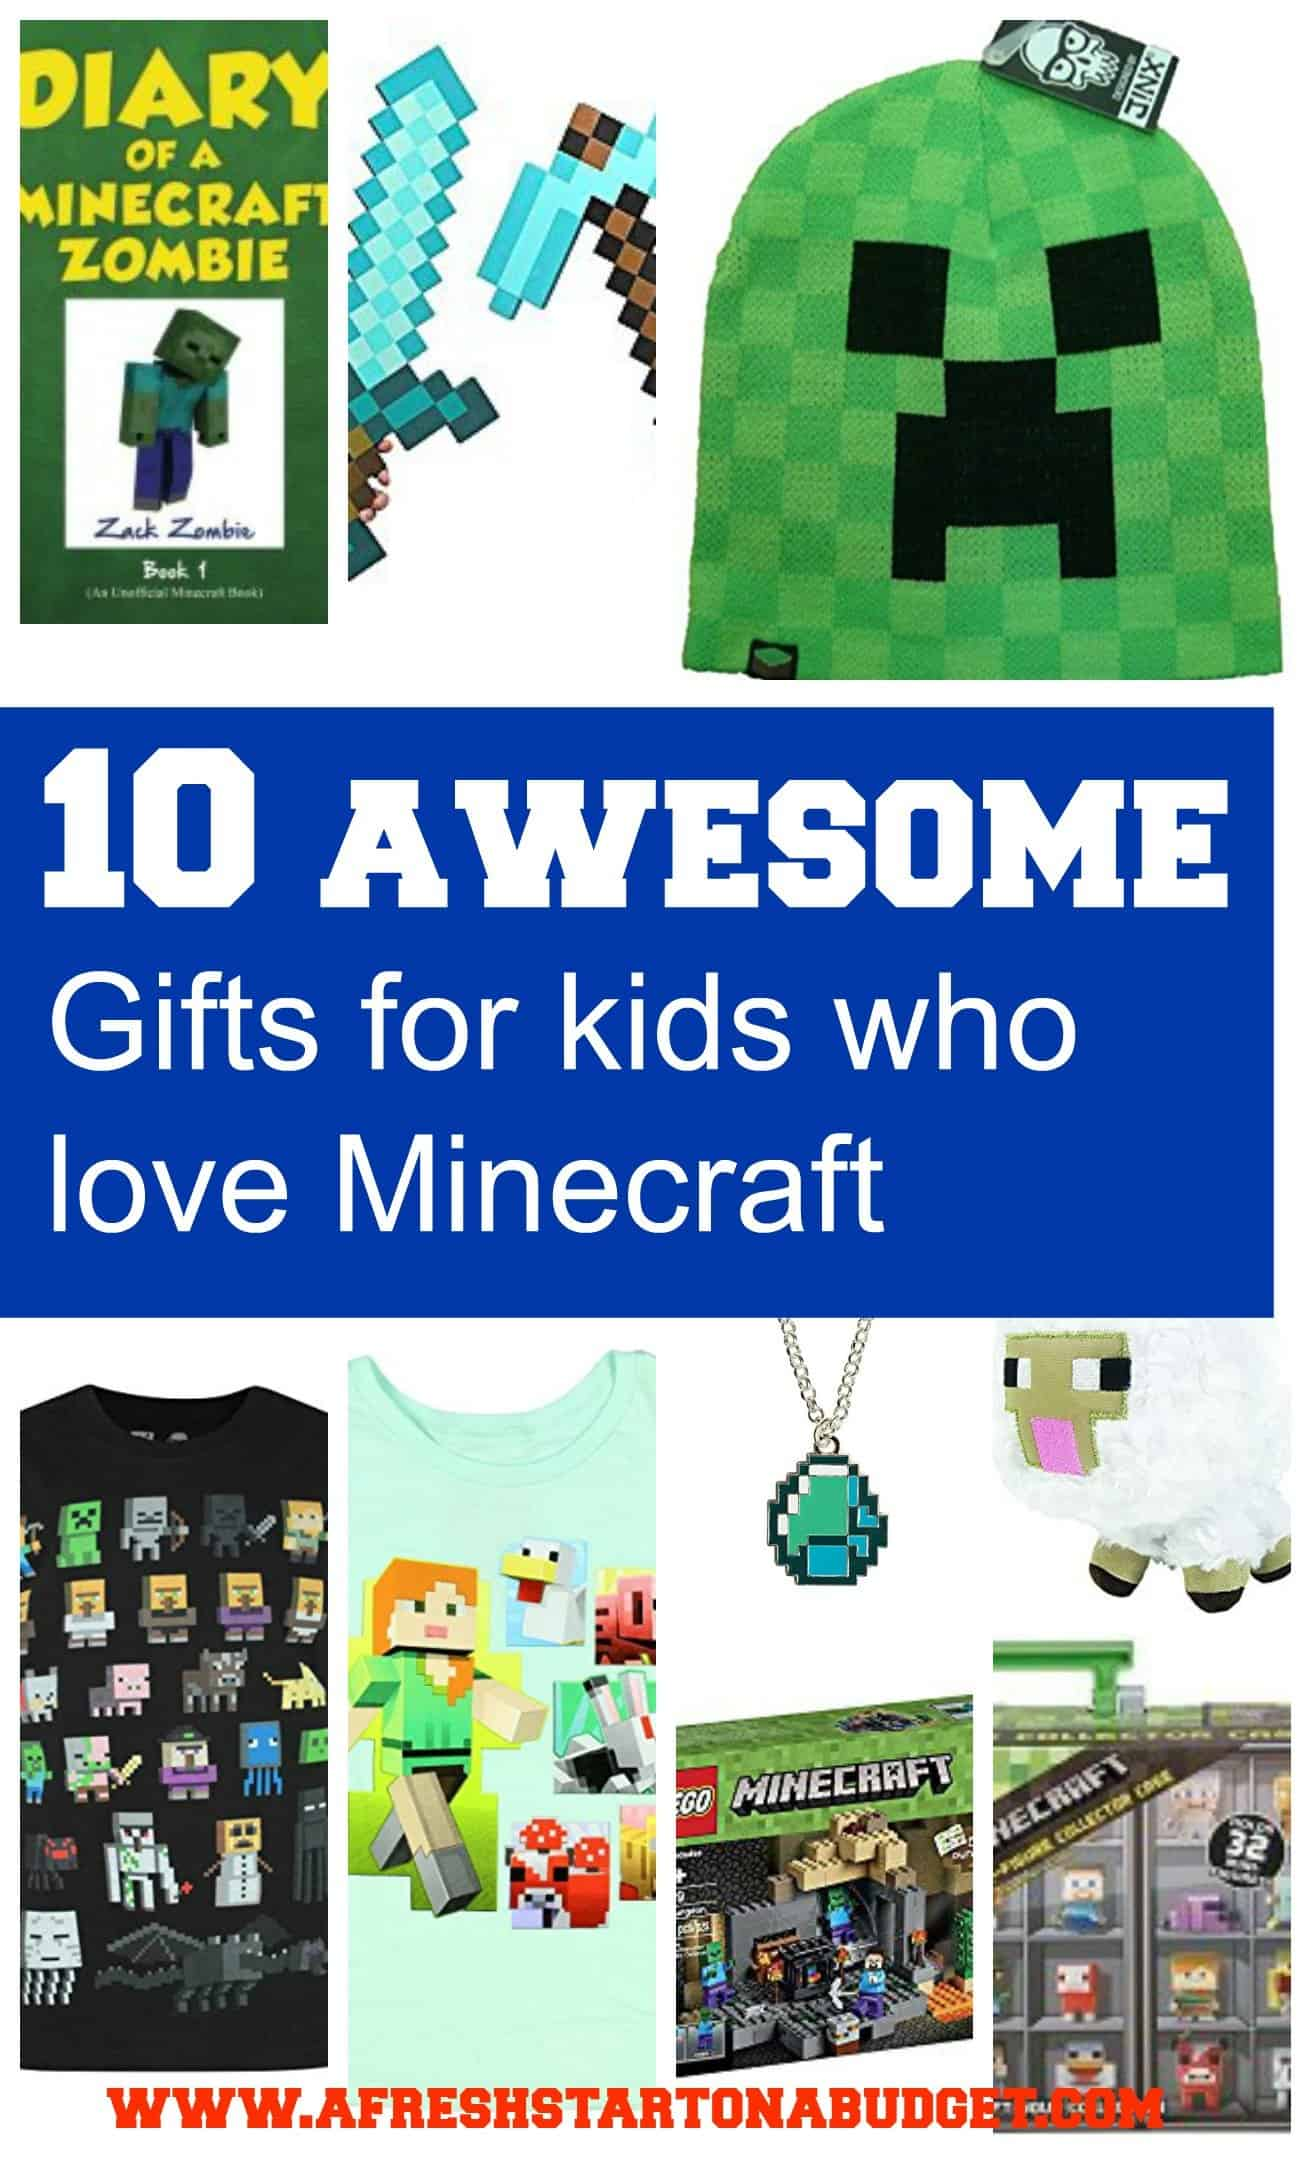 10 awesome Gifts for kids who love Minecraft